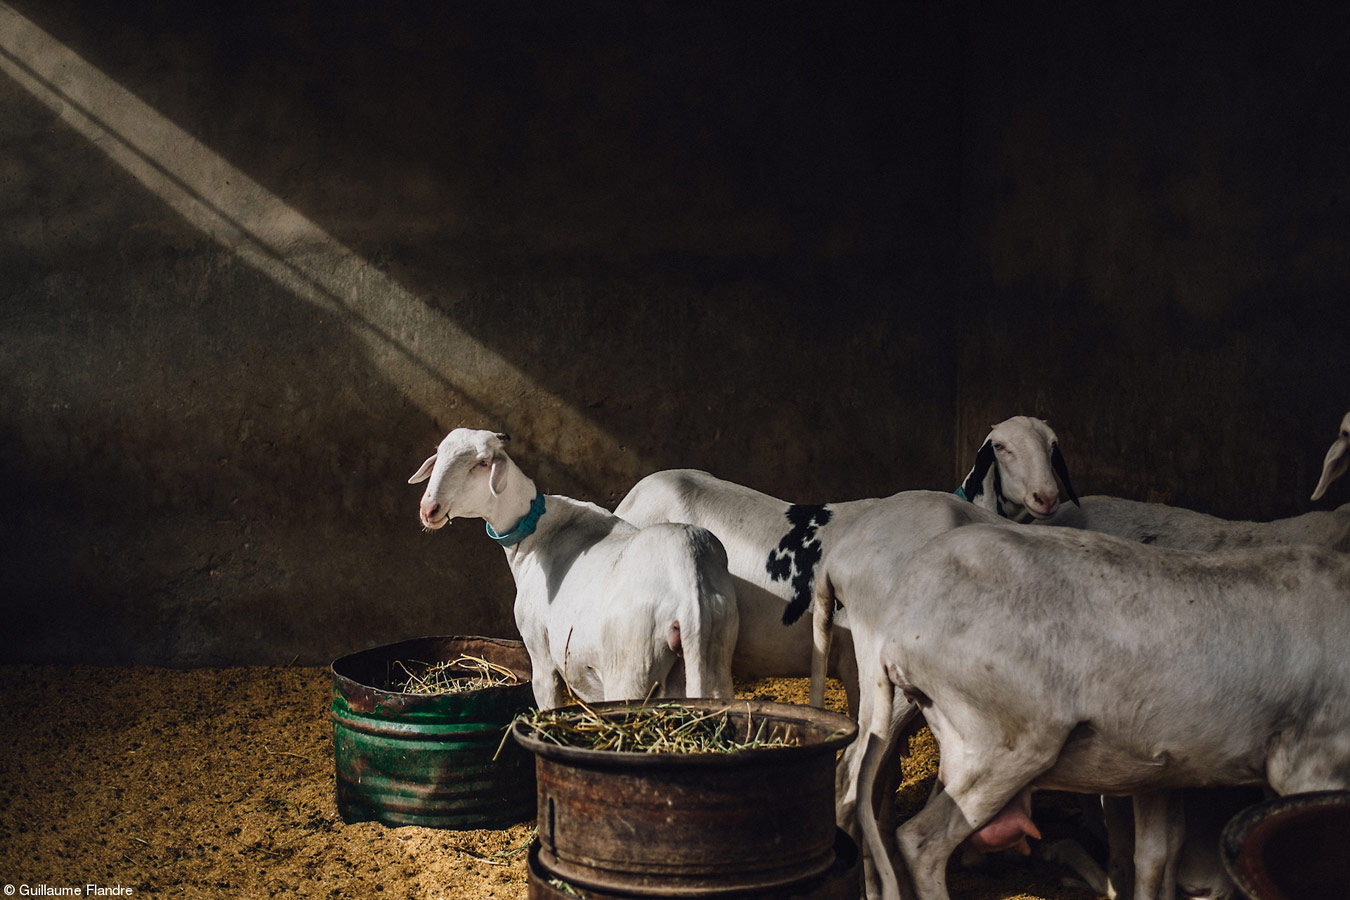 Sheep in Dakar, © Guillaume Flandre, United Kingdom, 1st Place, Food in the Field, Pink Lady Food Photographer of the Year